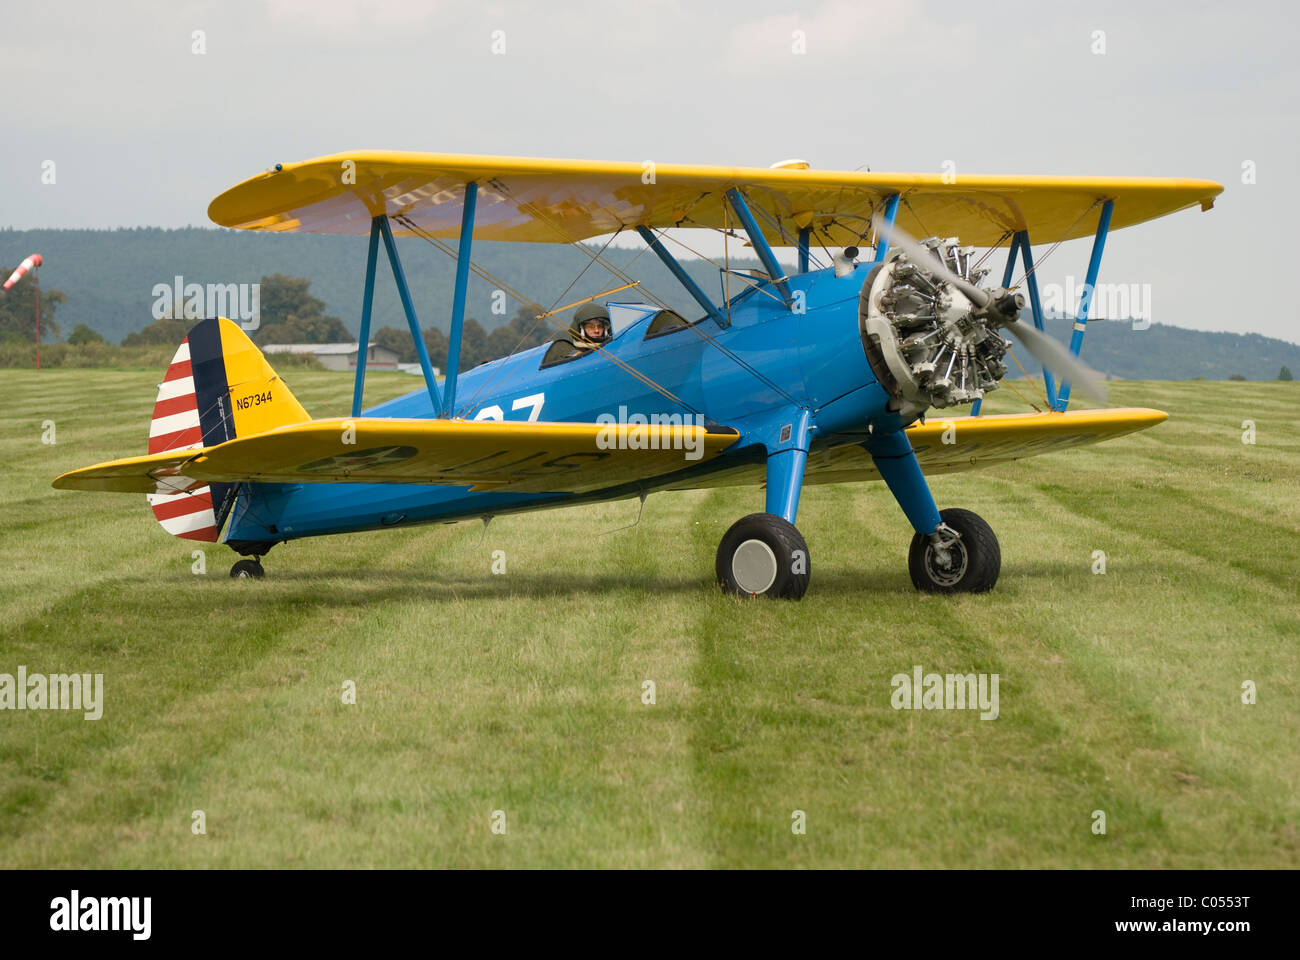 Biplane with radial engine - aircraft of type Boeing Stearman E75 on the ground, taxiing. - Stock Image